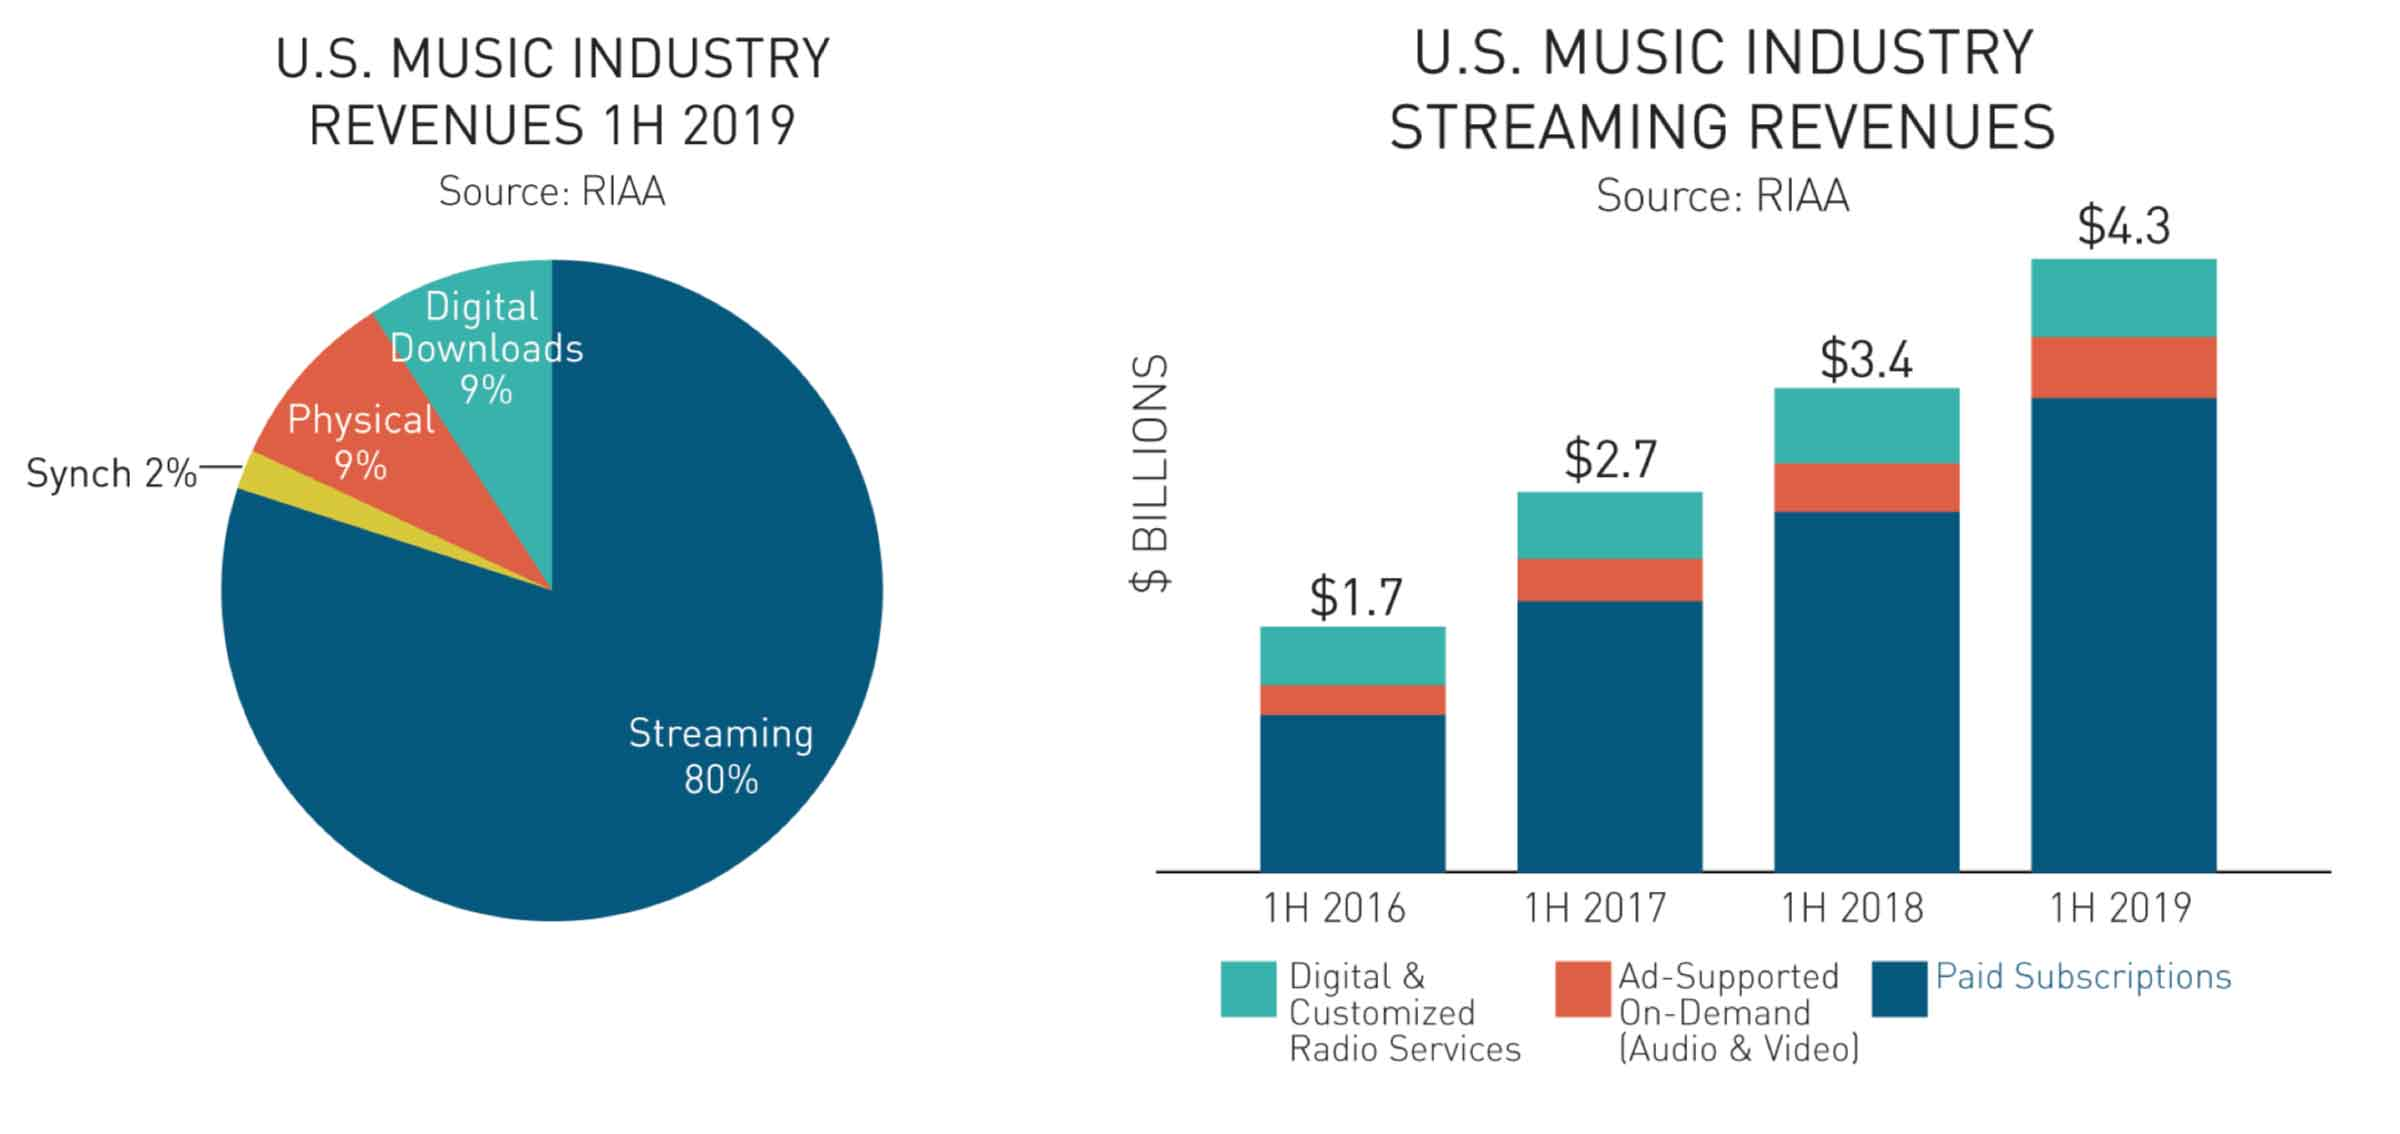 Apple Music e Spotify responsabili dell'80% dei ricavi dell'industria musicale in streaming